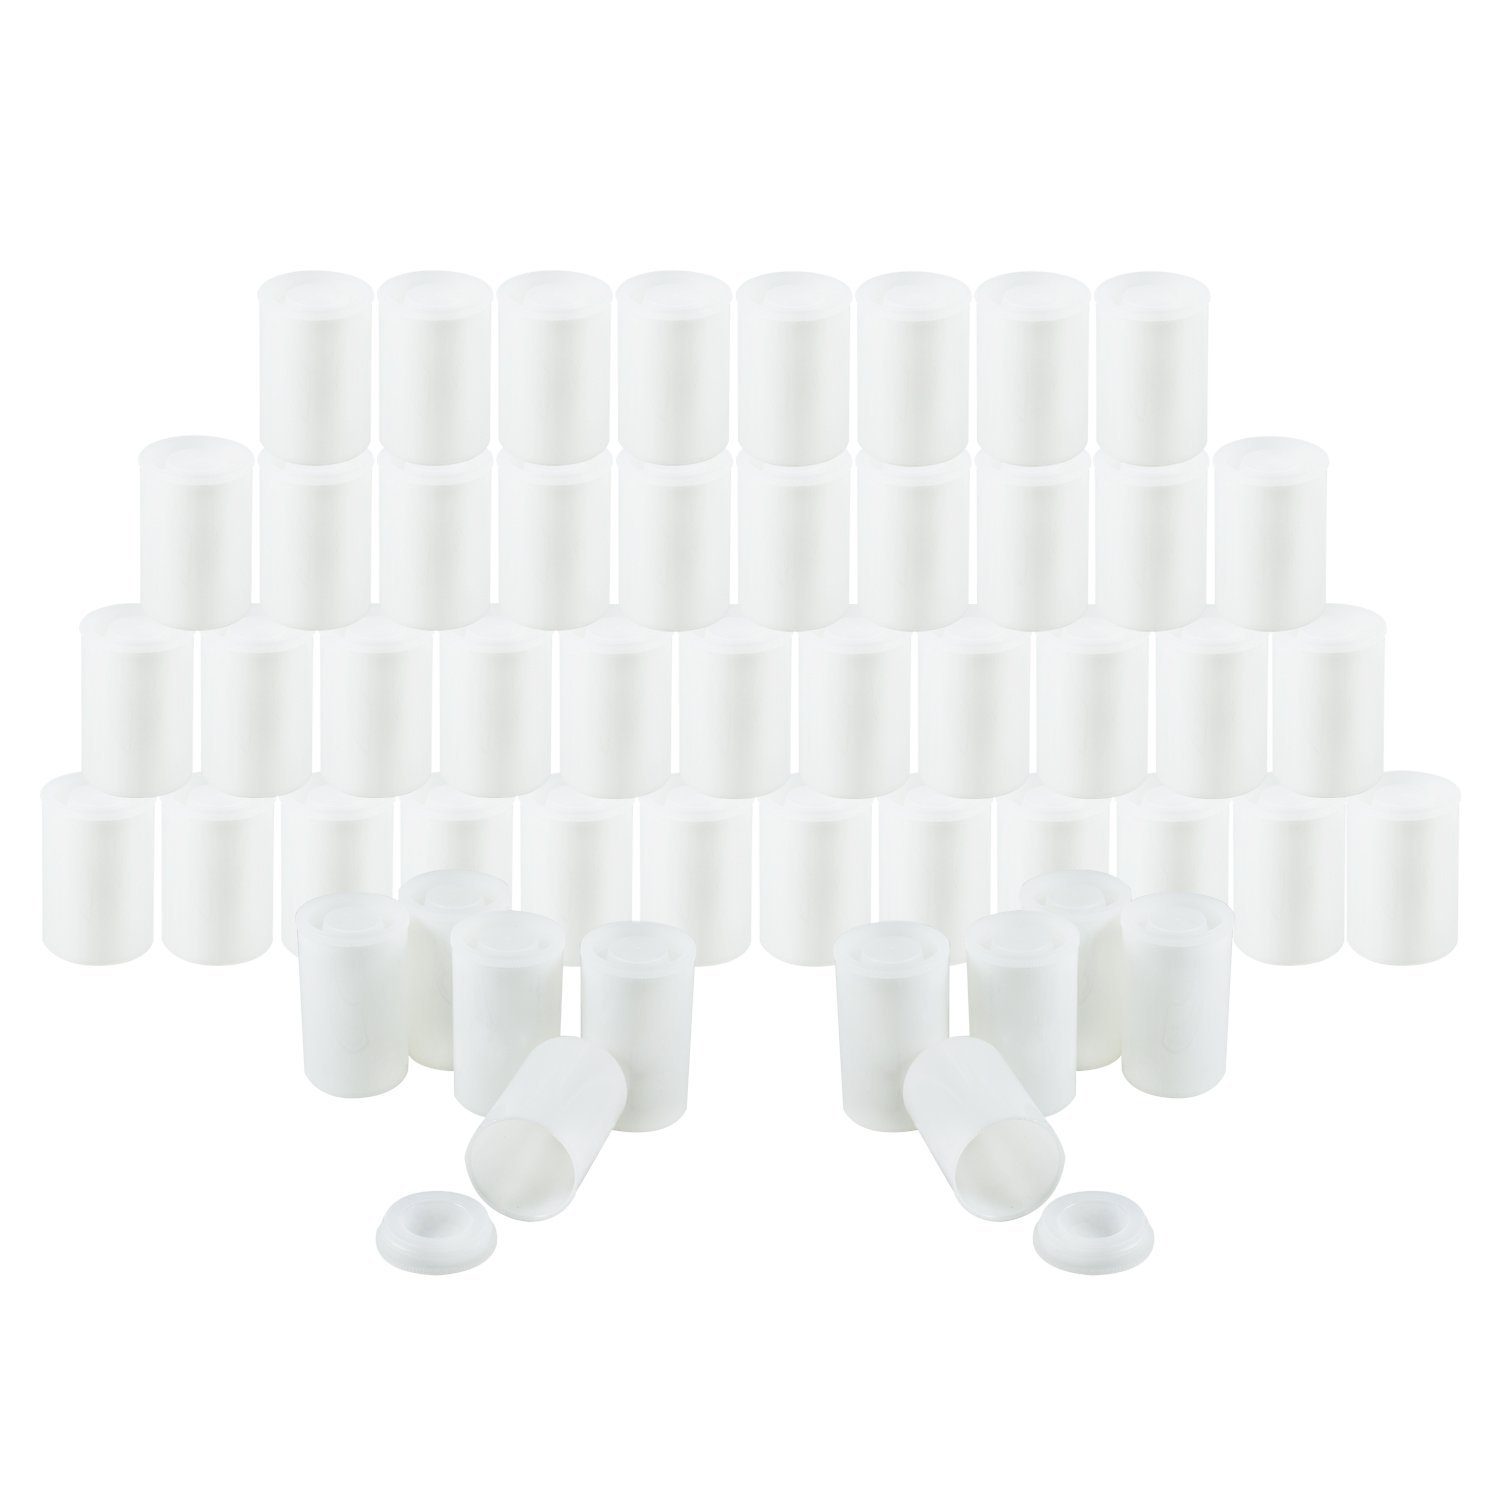 Houseables Film Canisters with Caps, 35MM Empty Camera Reel Containers, 60 Pack, White, 2'' H, 1'' W, Plastic, Films Developing Processing Tube, Roll Case, for Small Accessories, Beads, Alka Seltzer by Houseables